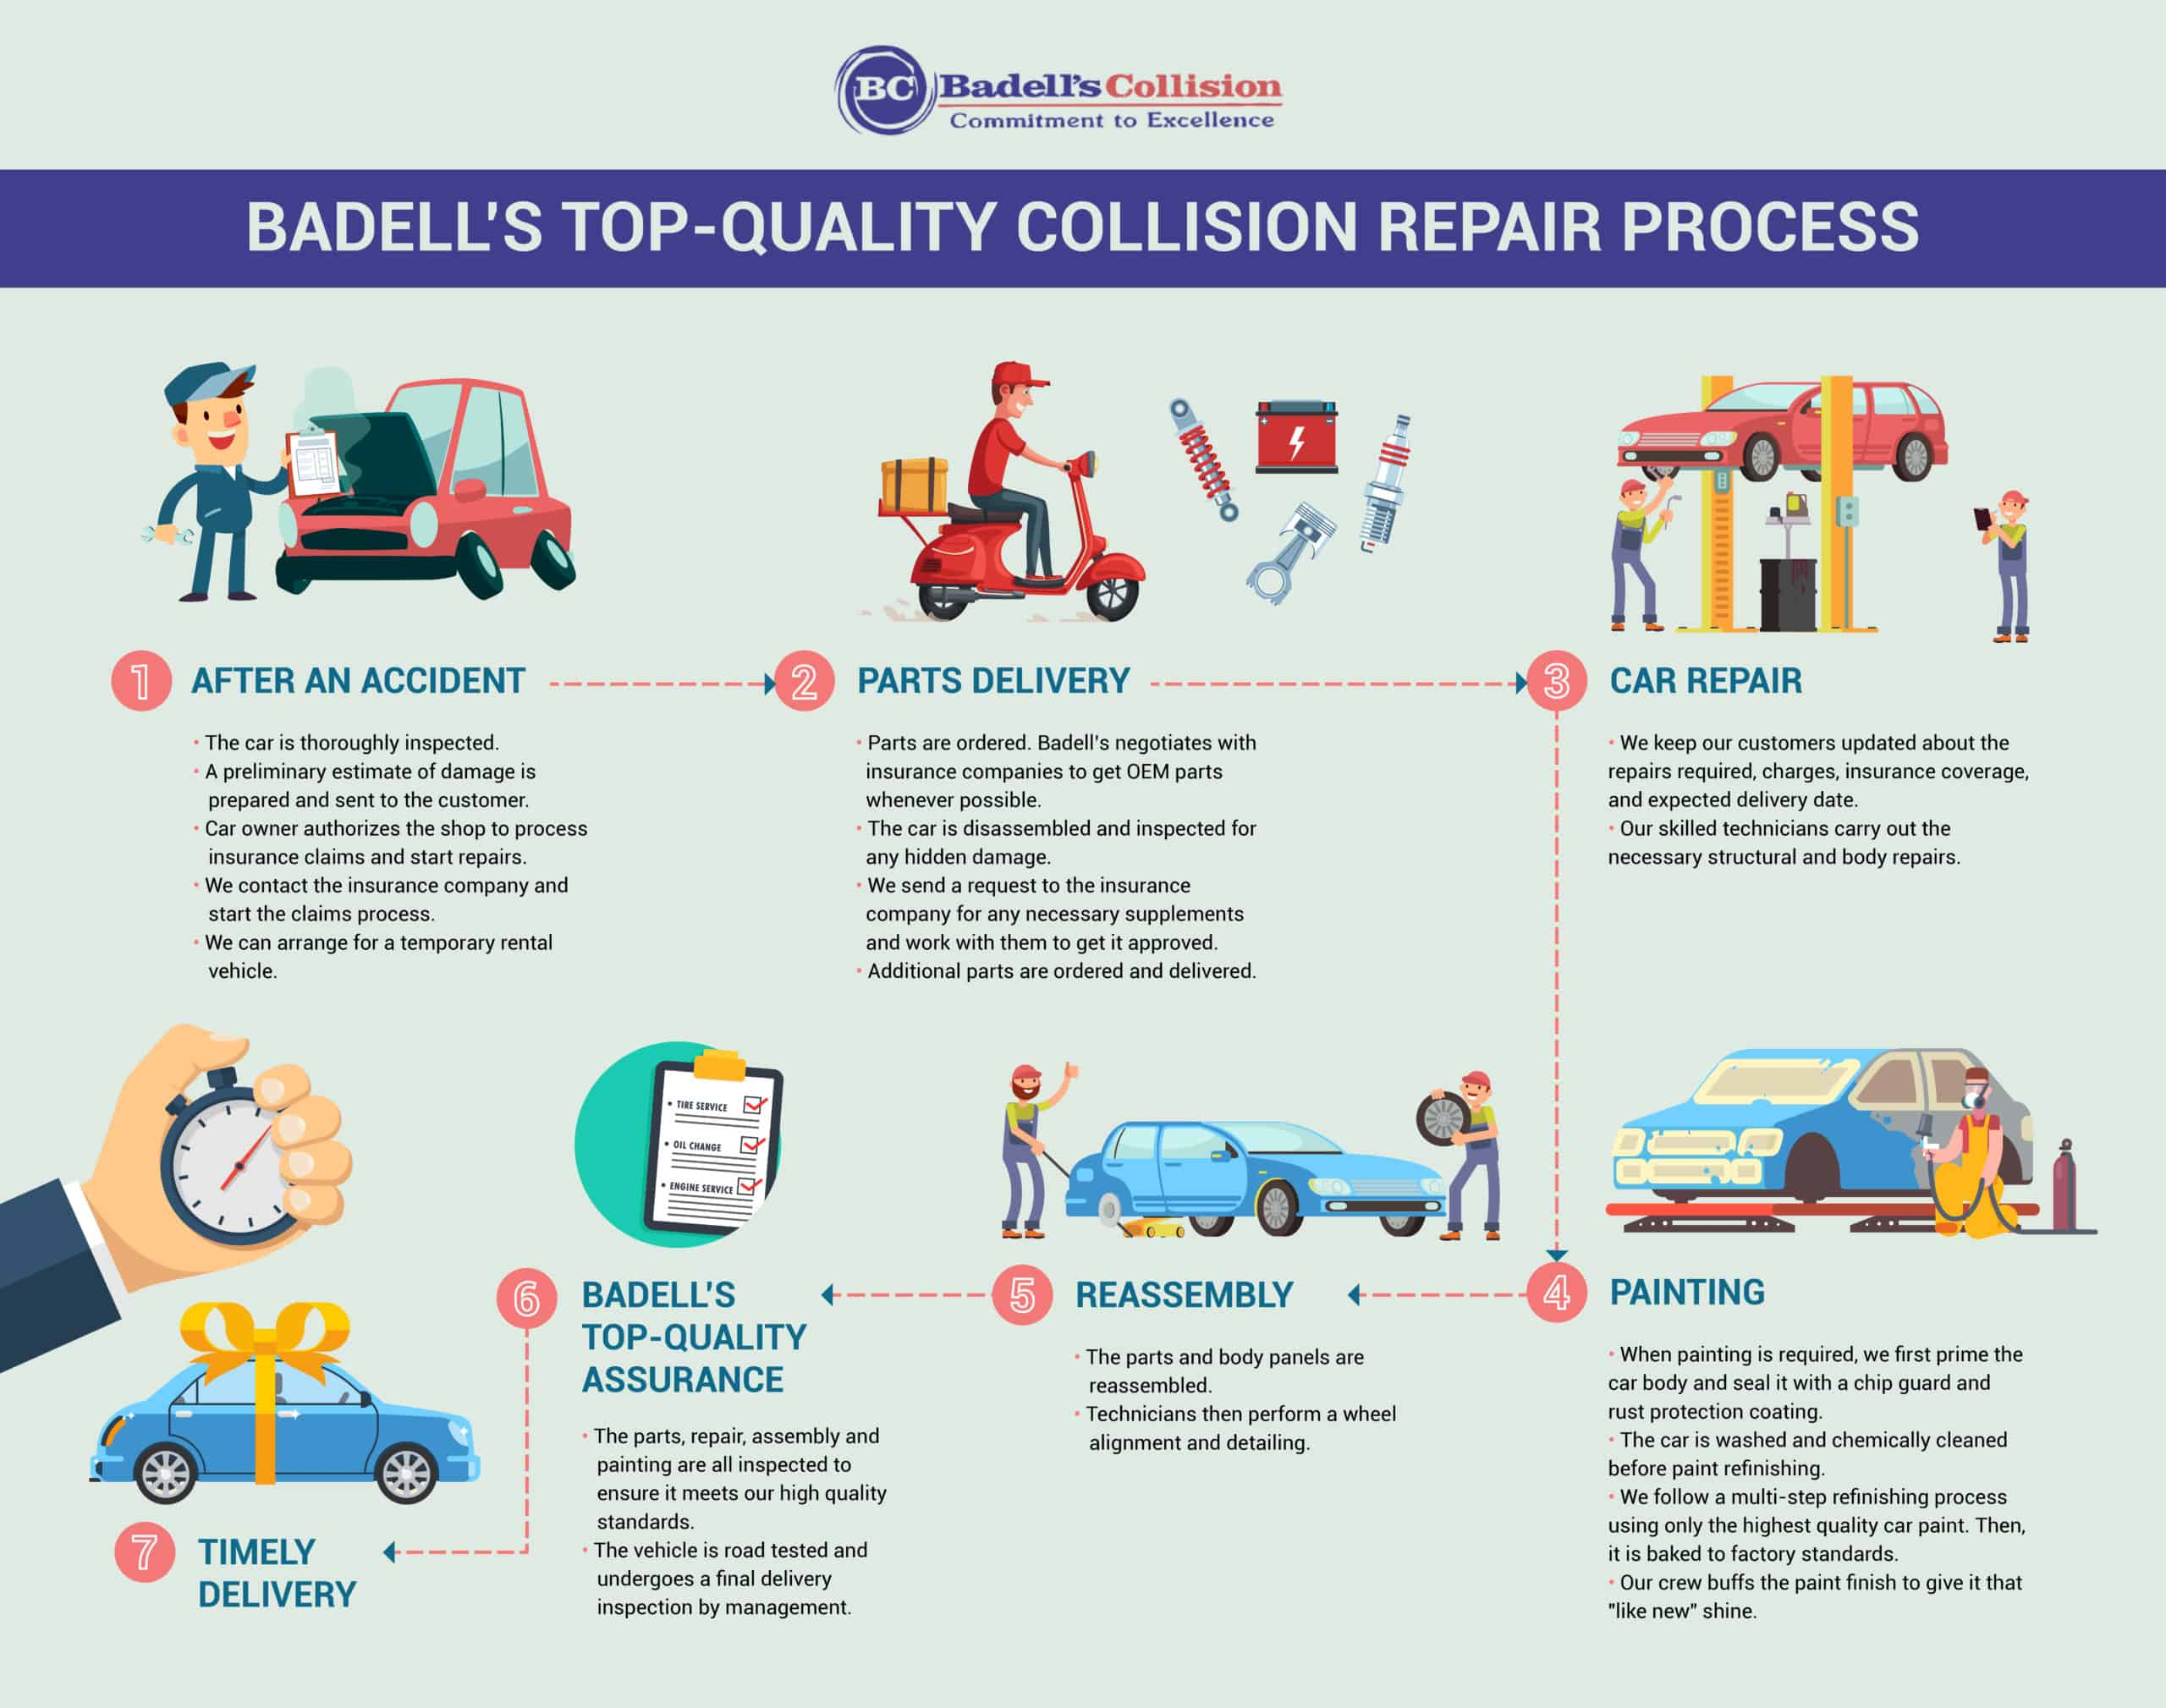 Infographic about Badell's quality collision repair process.